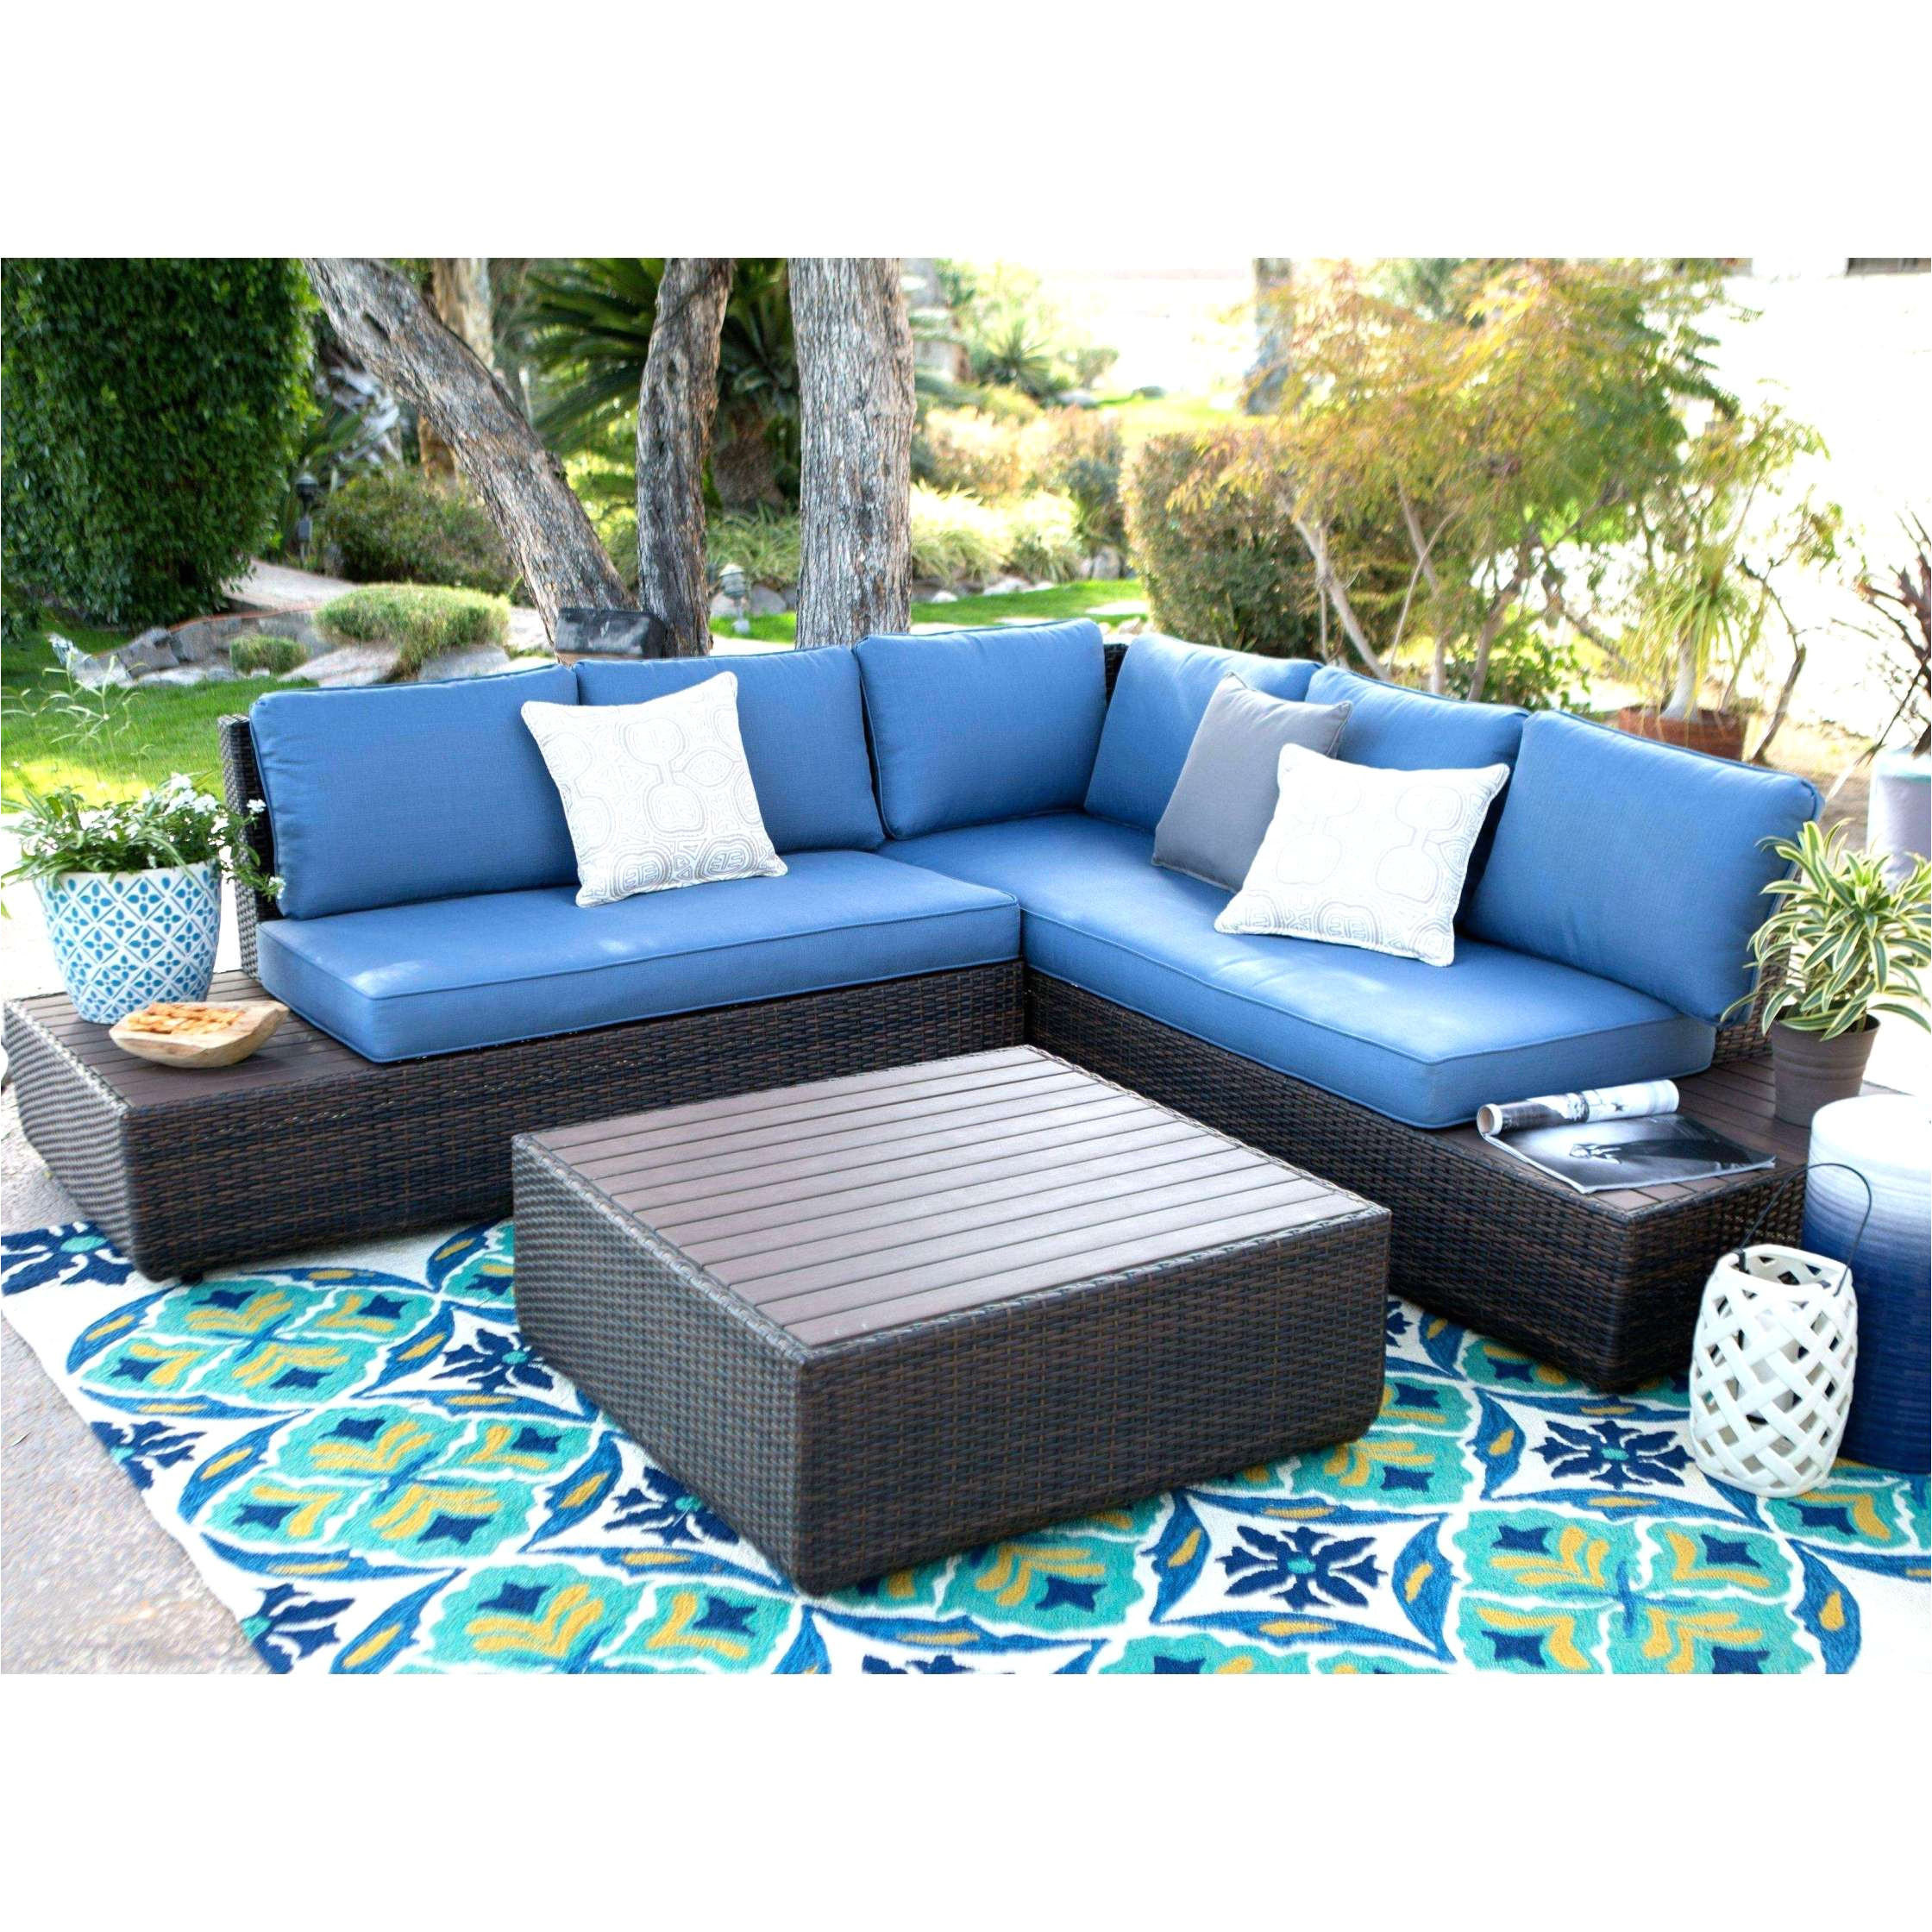 sling replacement for patio chairs folding beach lounge chair diy adinaporter attractive outdoor cushions within furniture lovely wicker sofa 0d